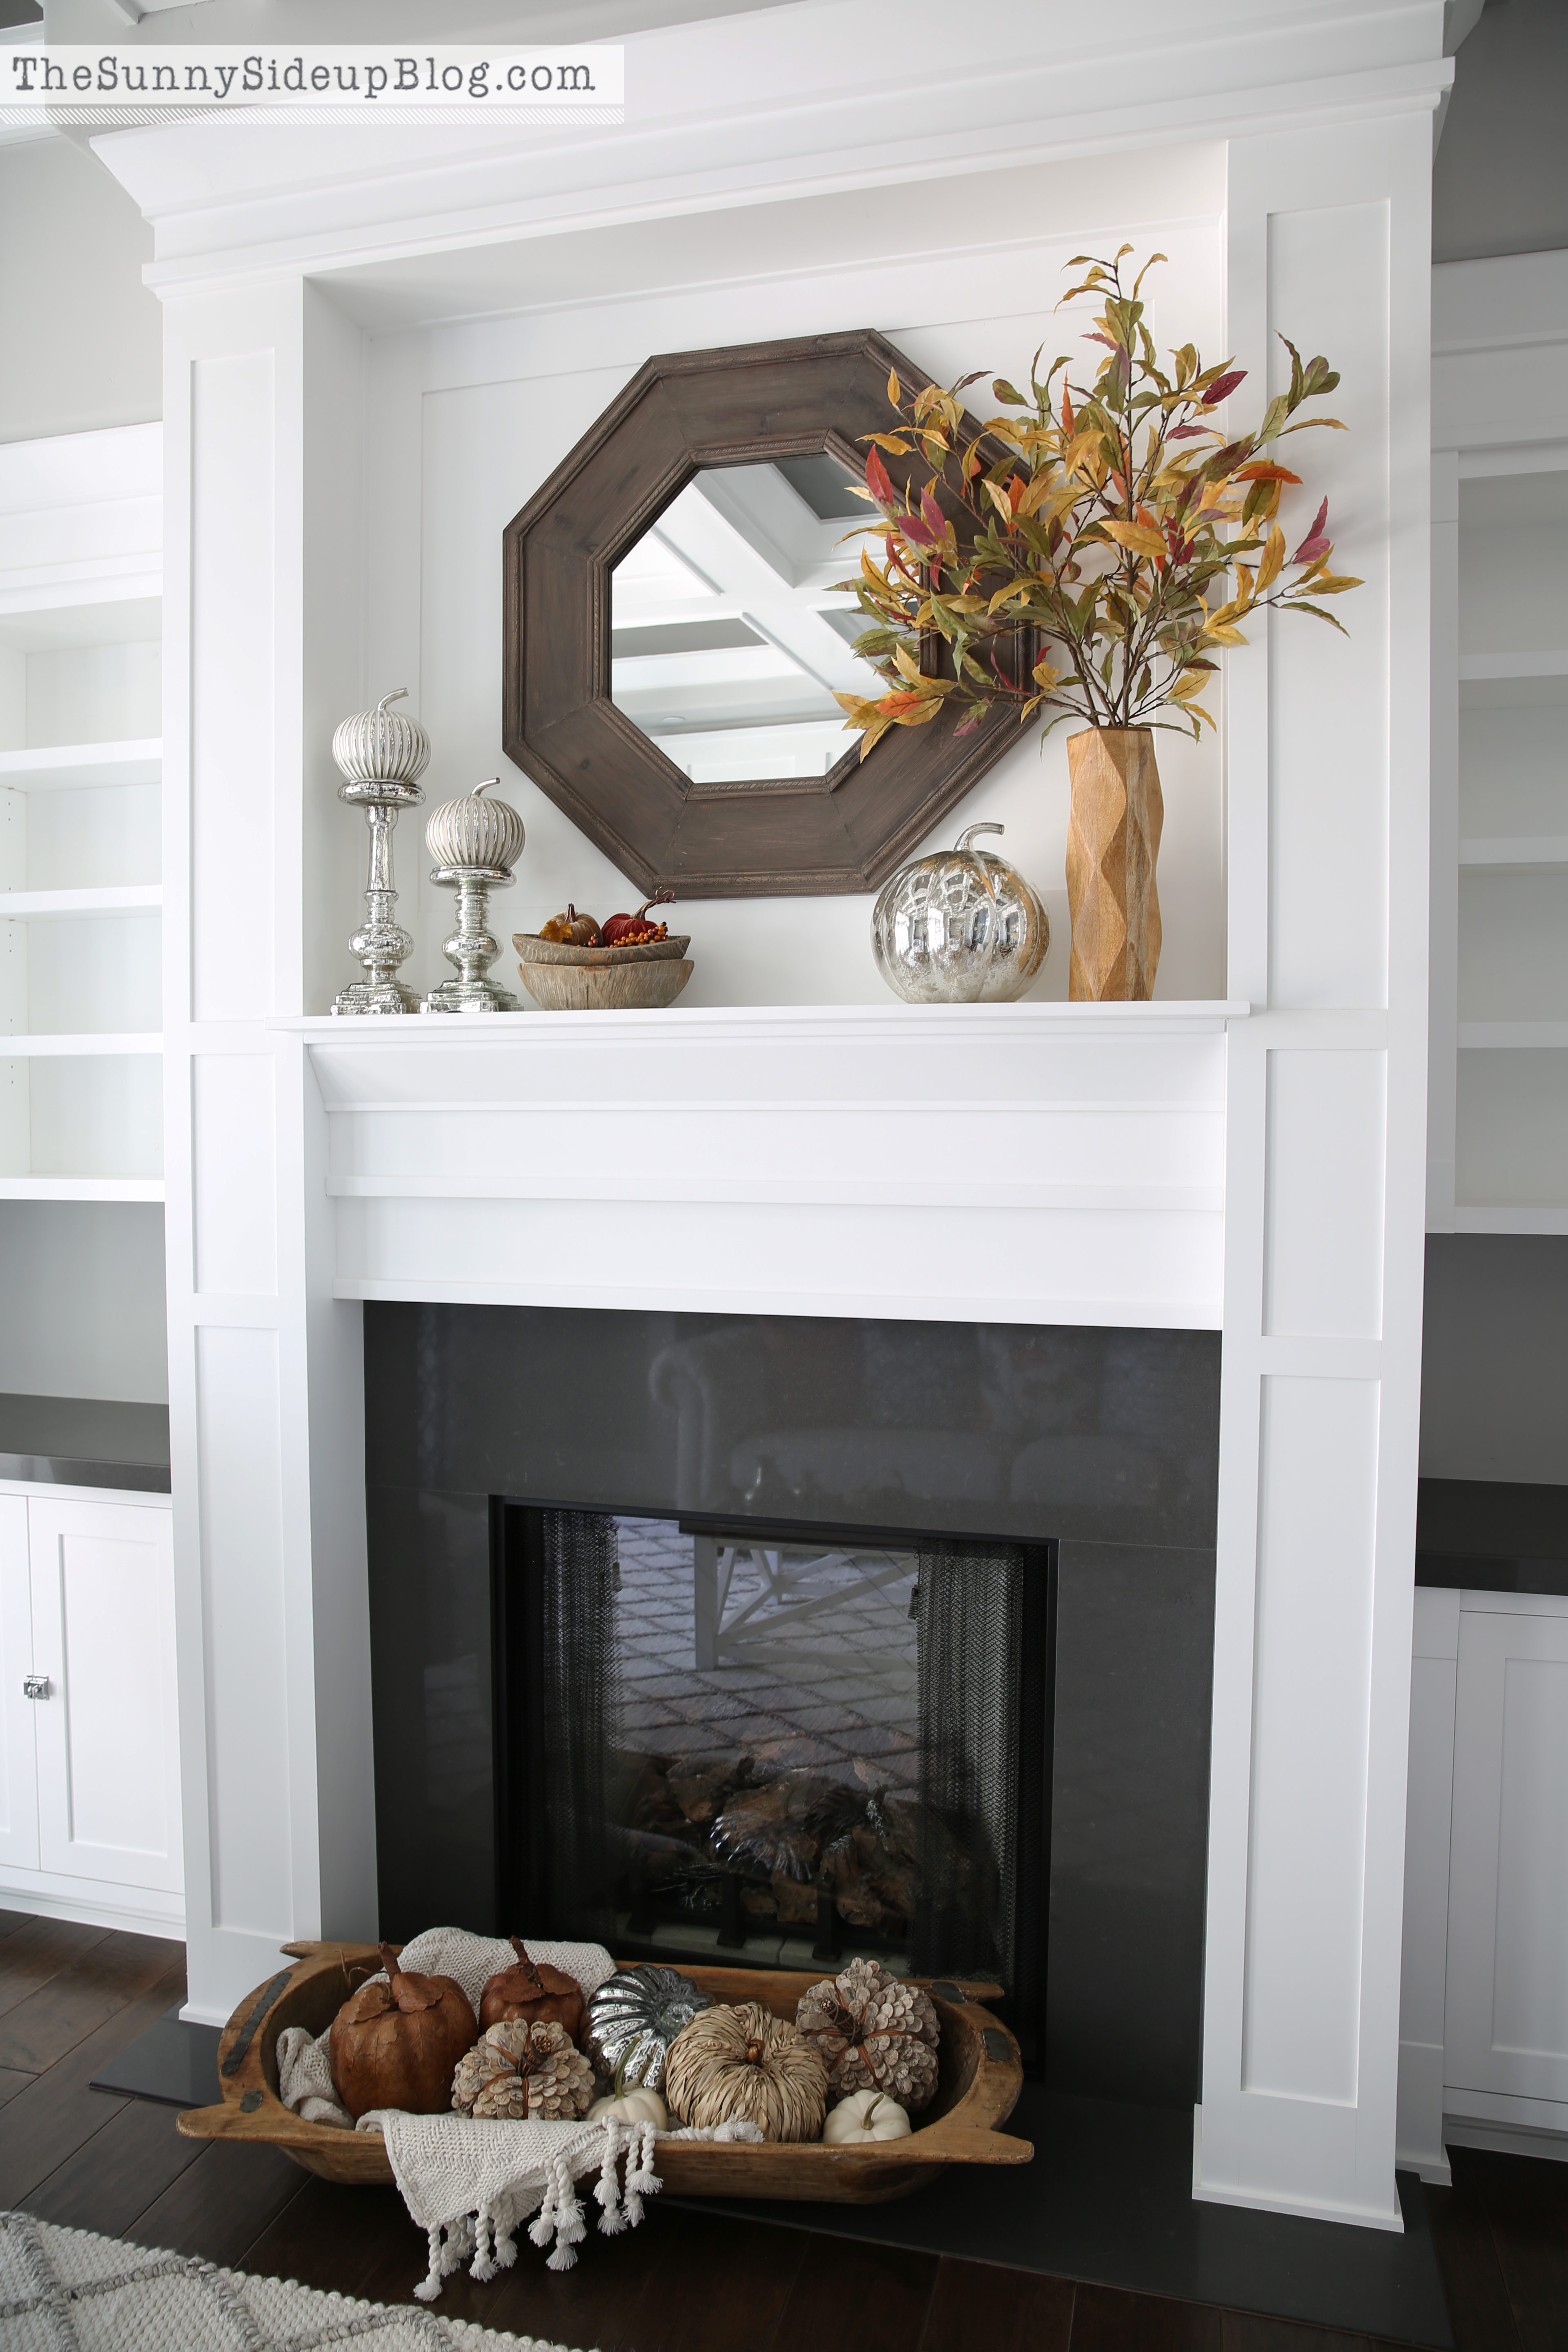 fall and chairs in the formal living room the sunny side up blog they re ok but seem like a bit much too bushy for this narrow mantel so i m going to tweak that but hello decor in this room i m celebrating